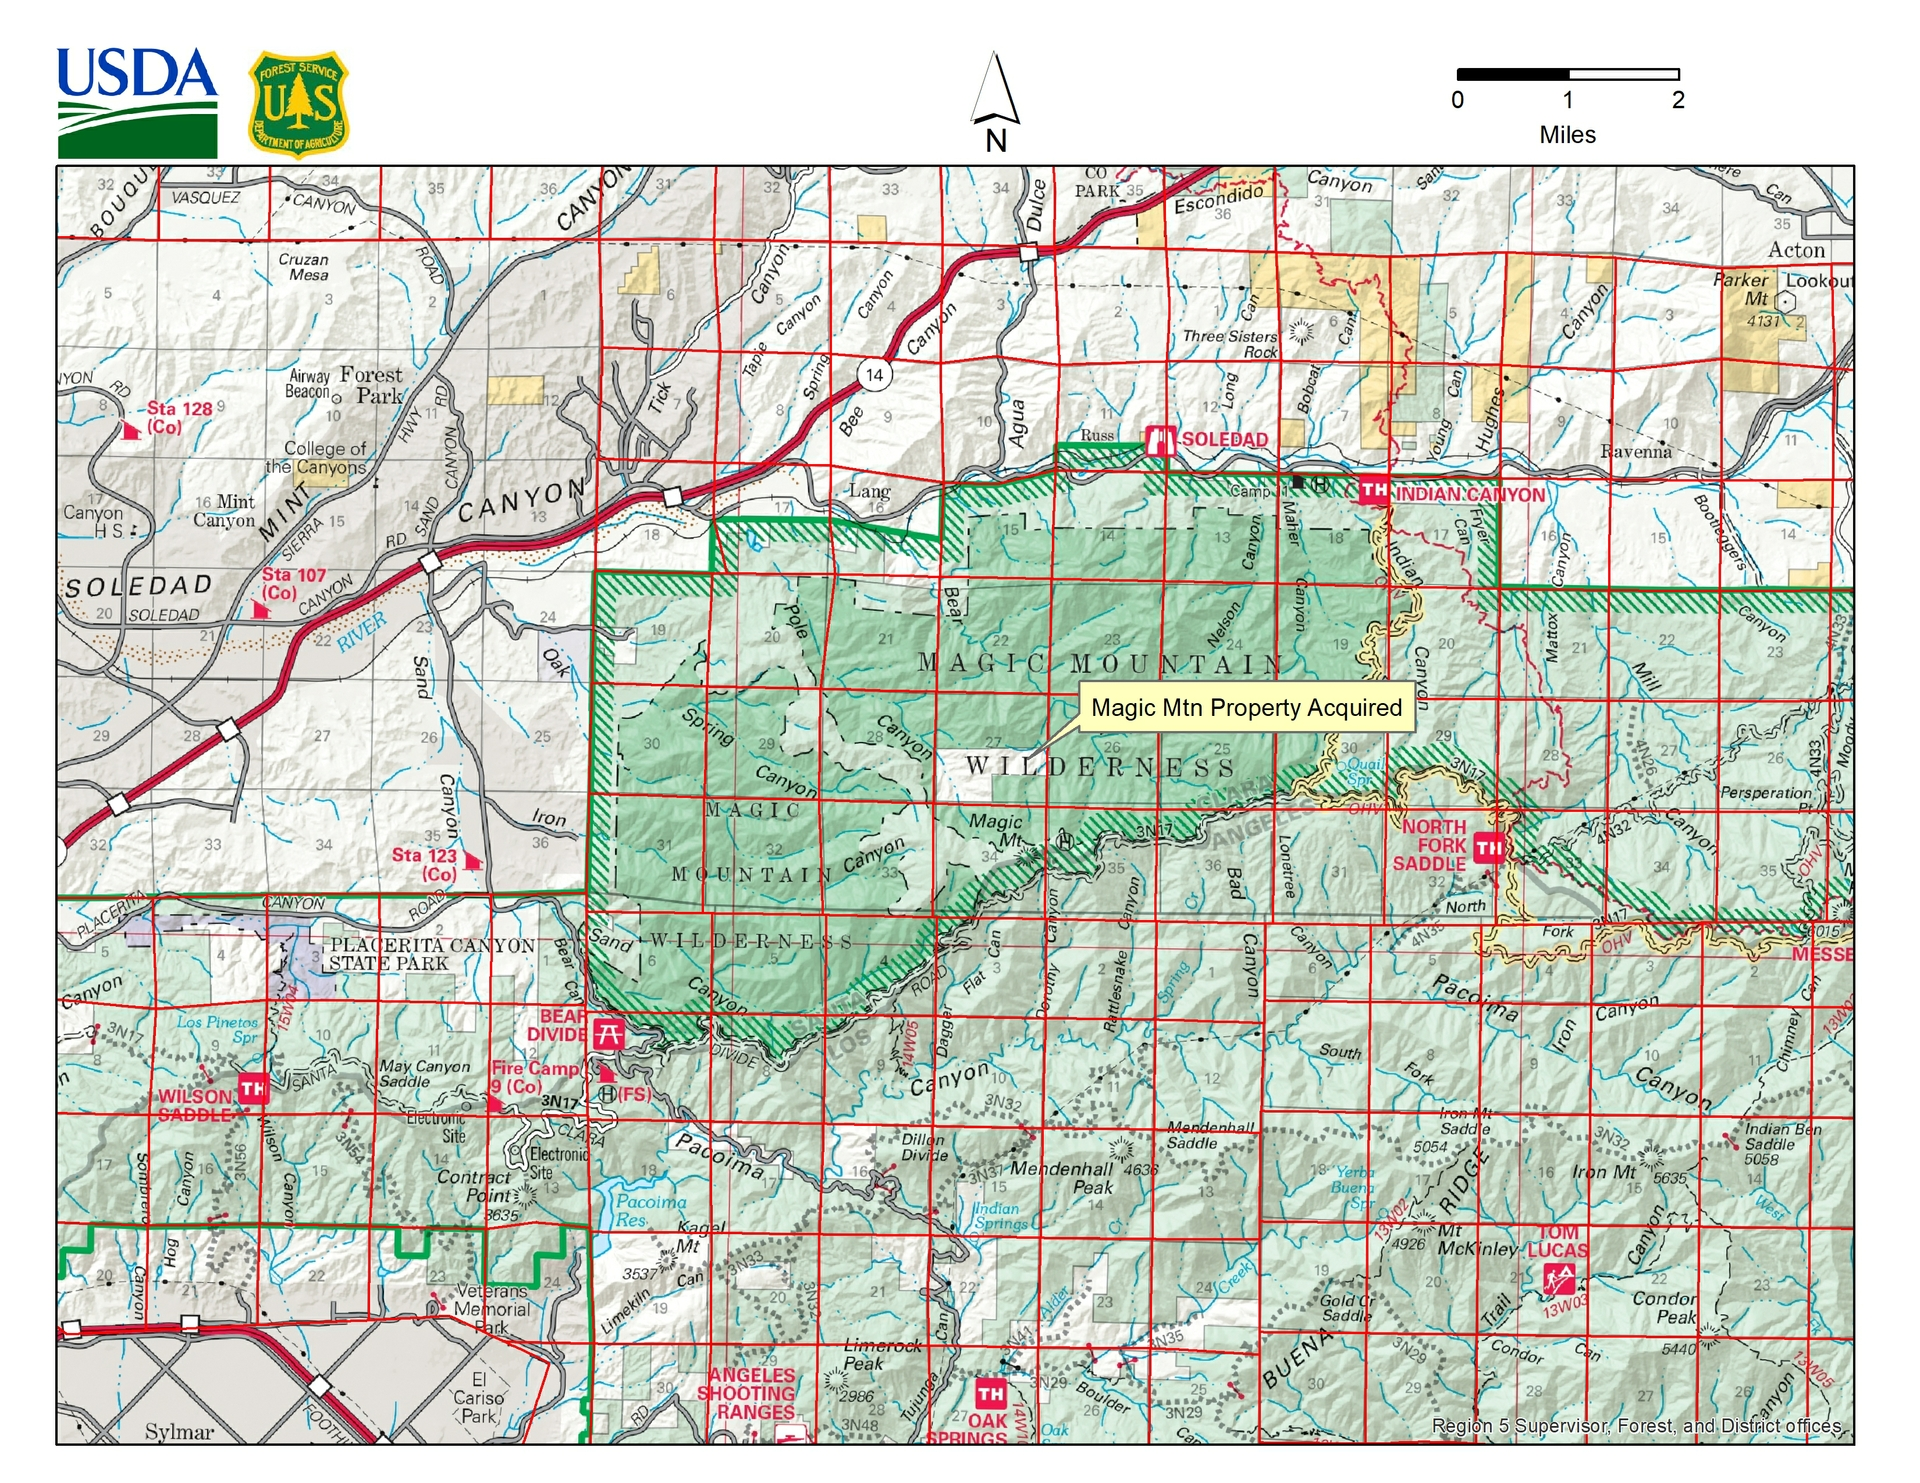 The 240 acres donation is part of SCE's mitigation as a result of construction for the Tehachapi Renewable Transmission Project that runs through part of the forest.